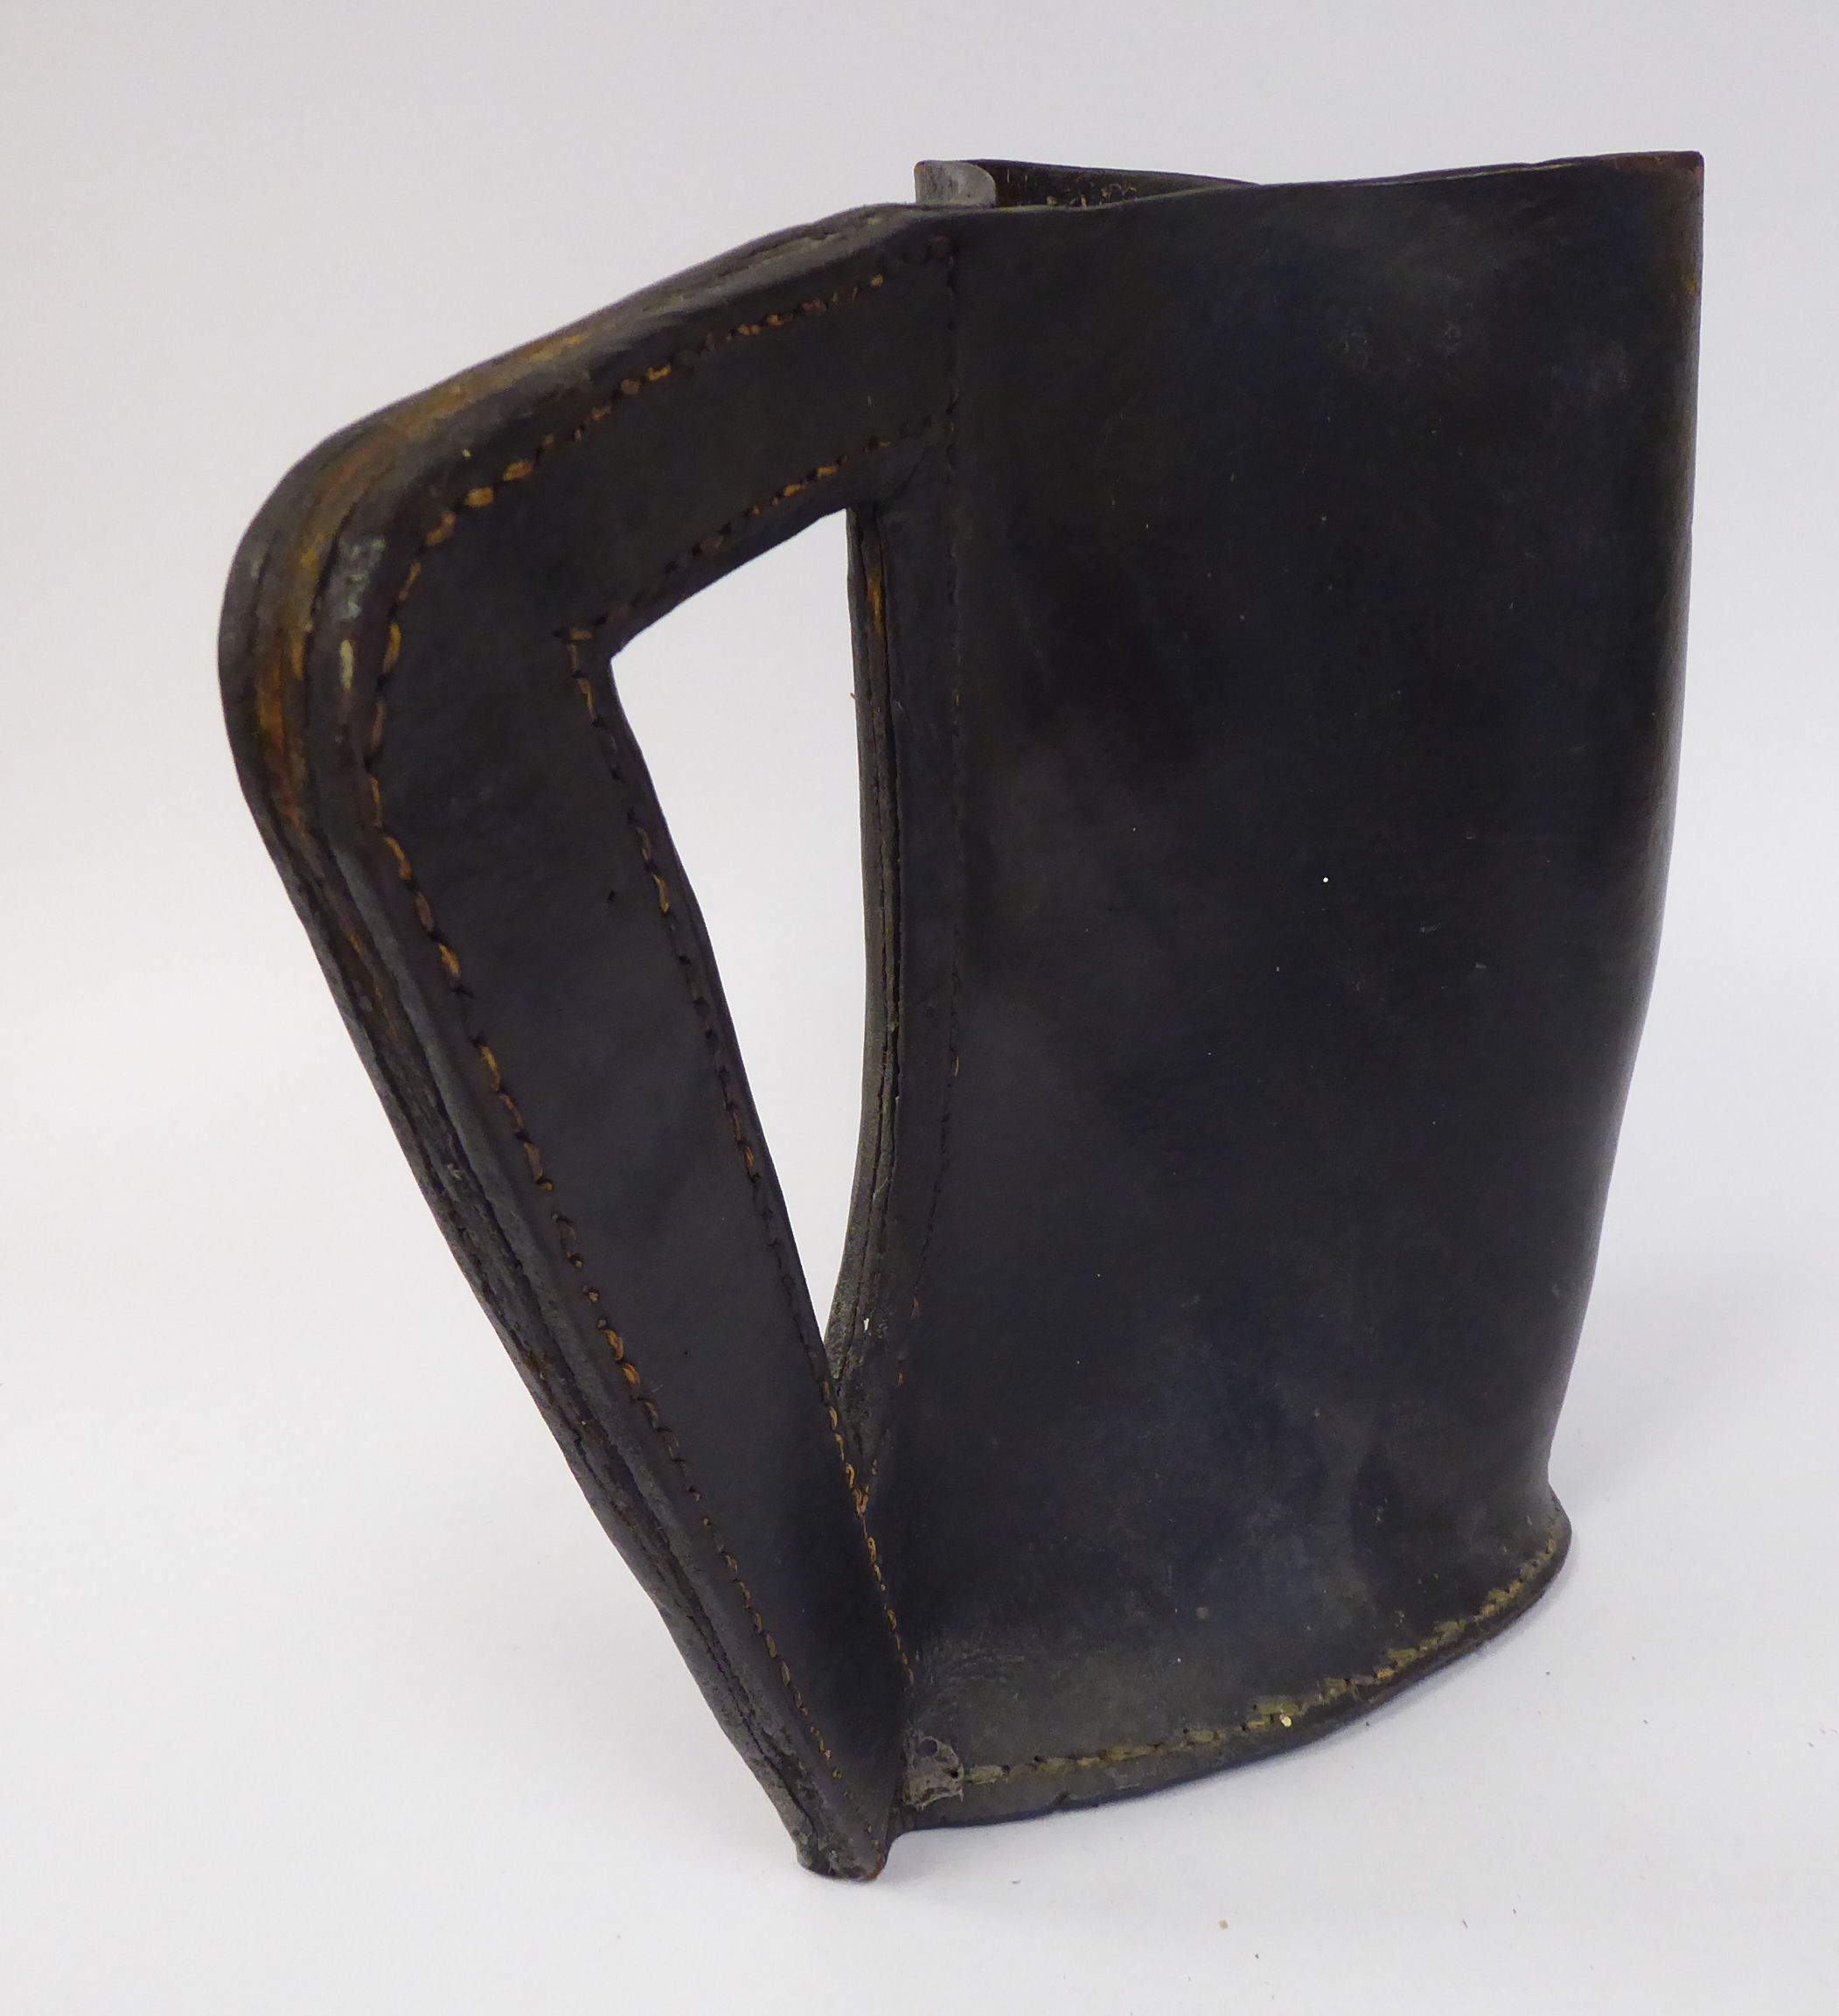 Lot 35 - An 'antique' Black Jack moulded and stitched hide jug with an angular handle 10''h